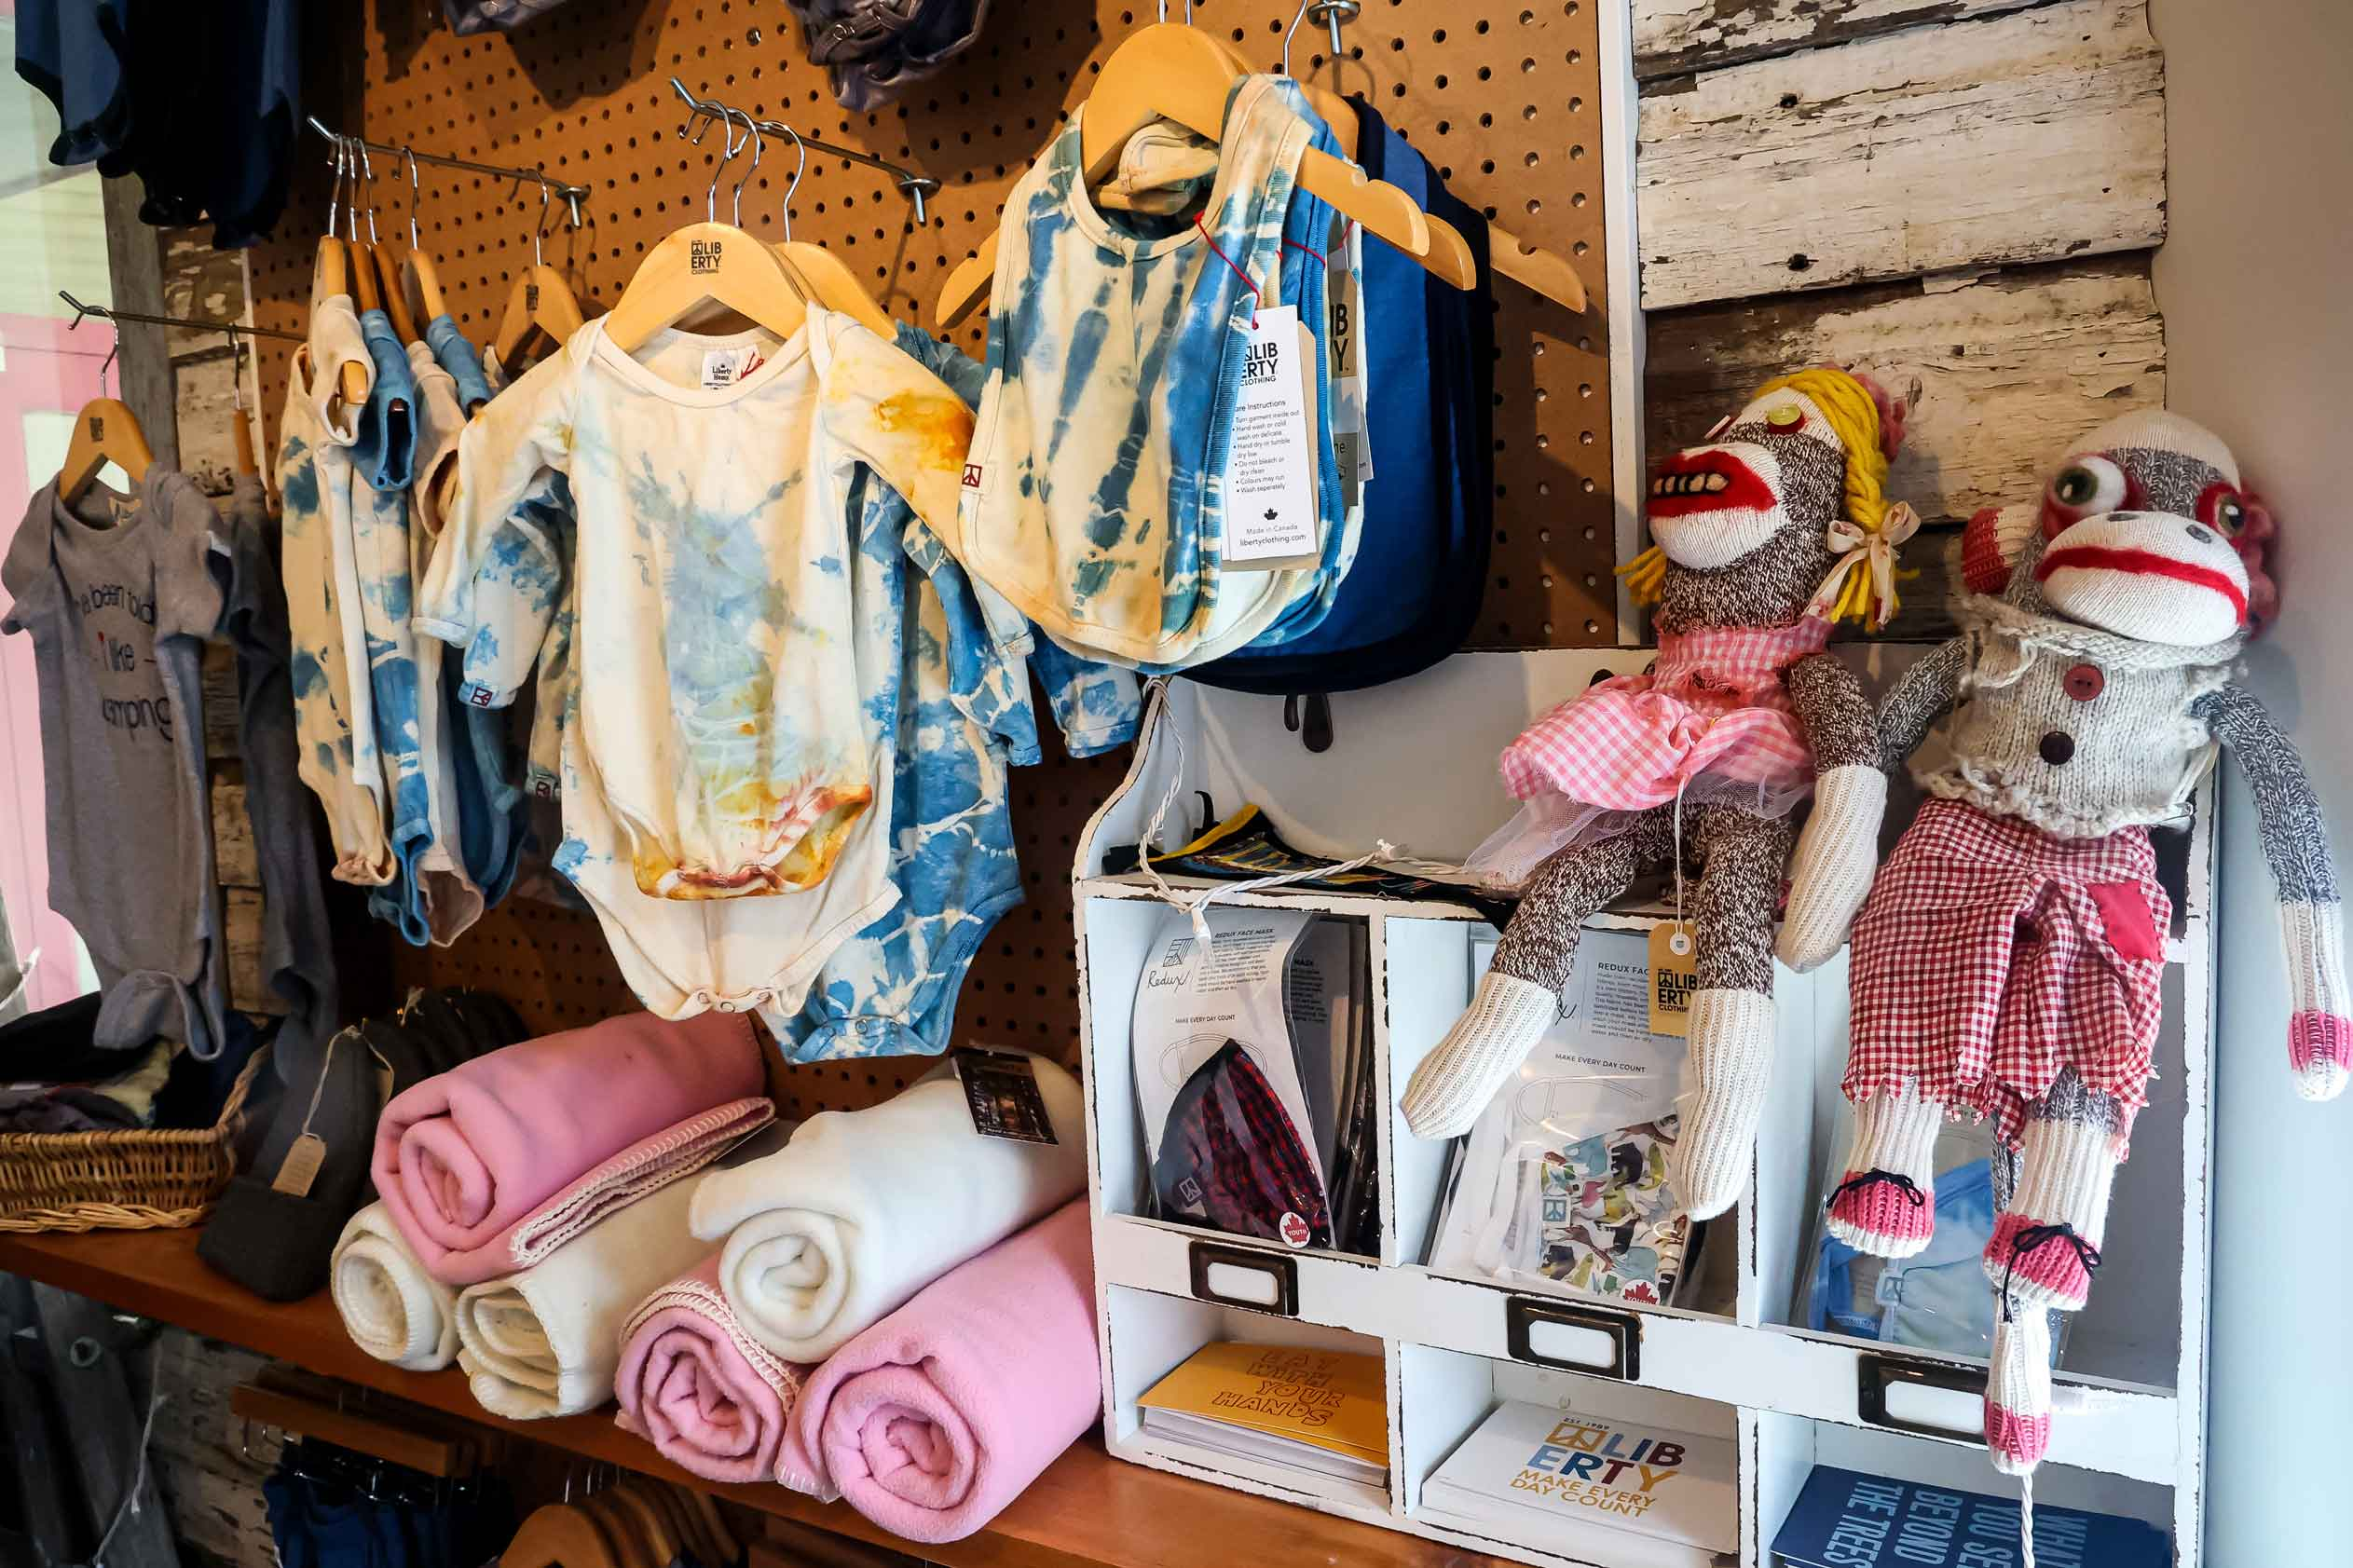 Infant items from Liberty Clothing. Photo by Katharyn Sotvedt